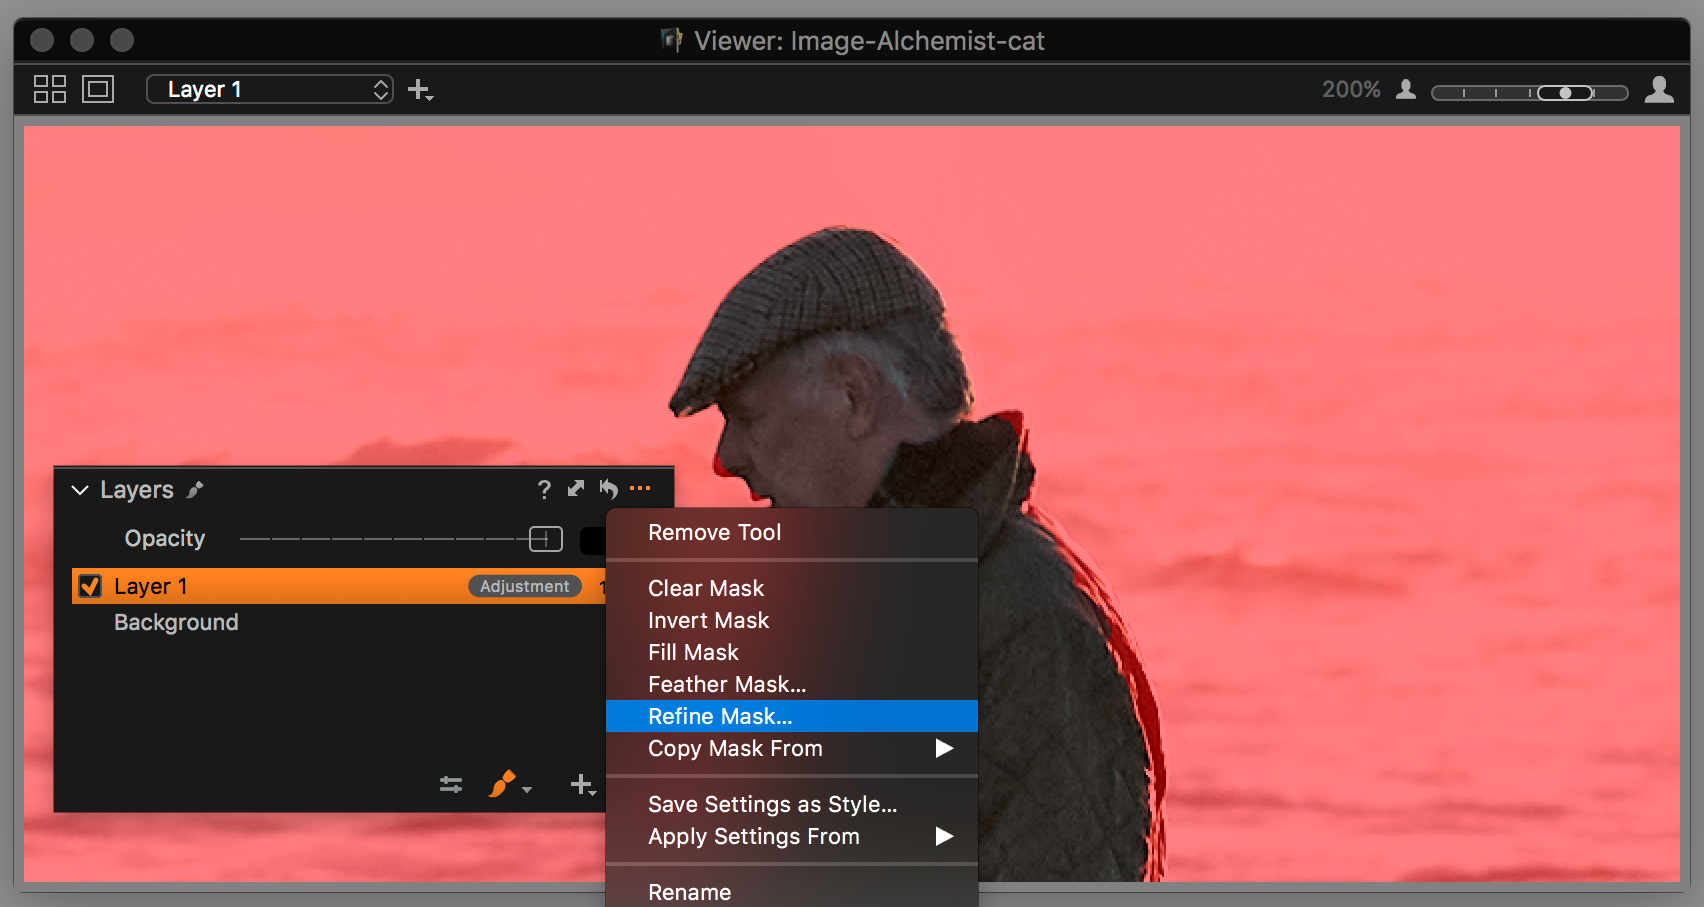 capture one layers in-depth, refine mask selected